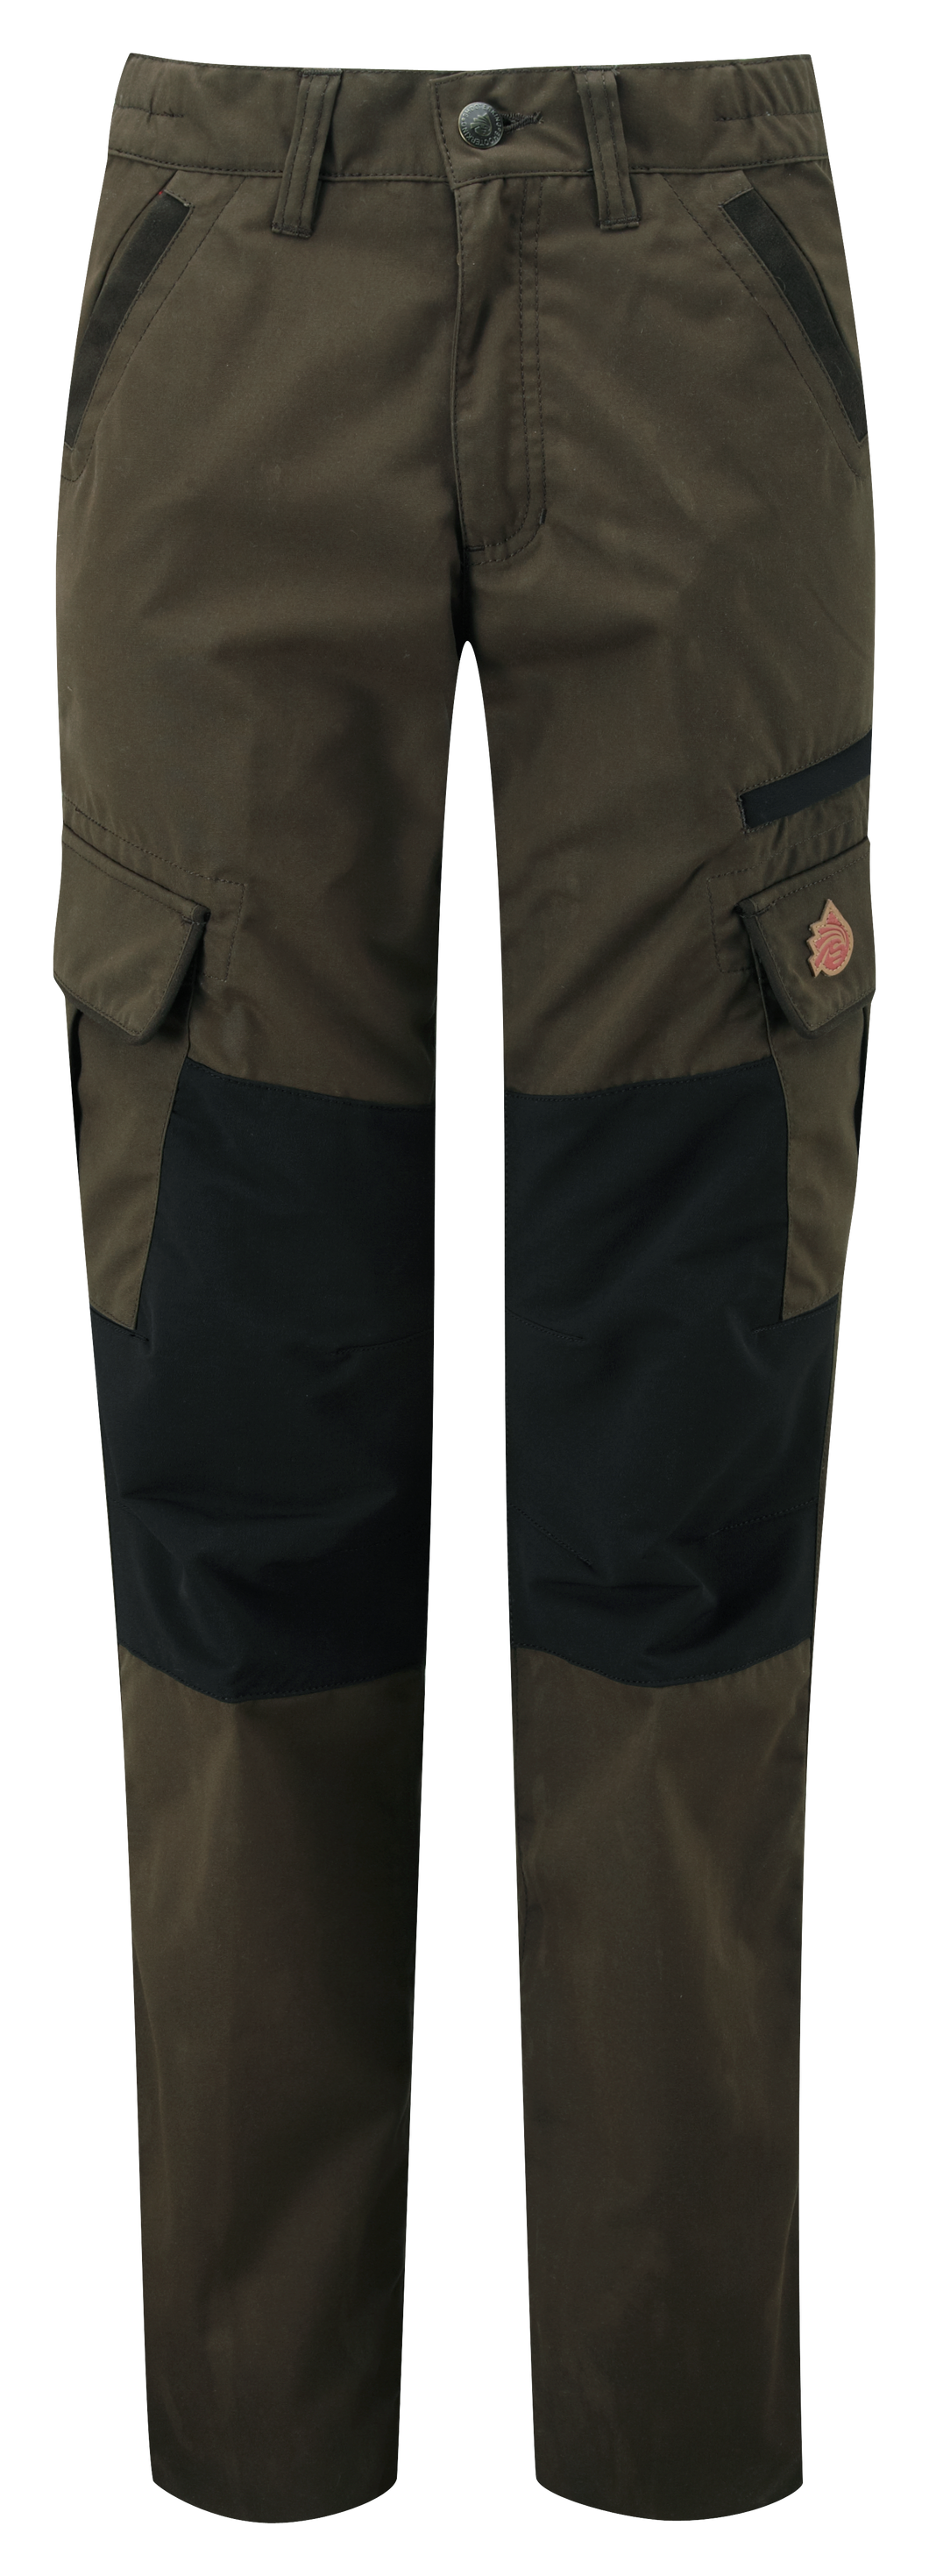 ShooterKing Cordura Pants Women's